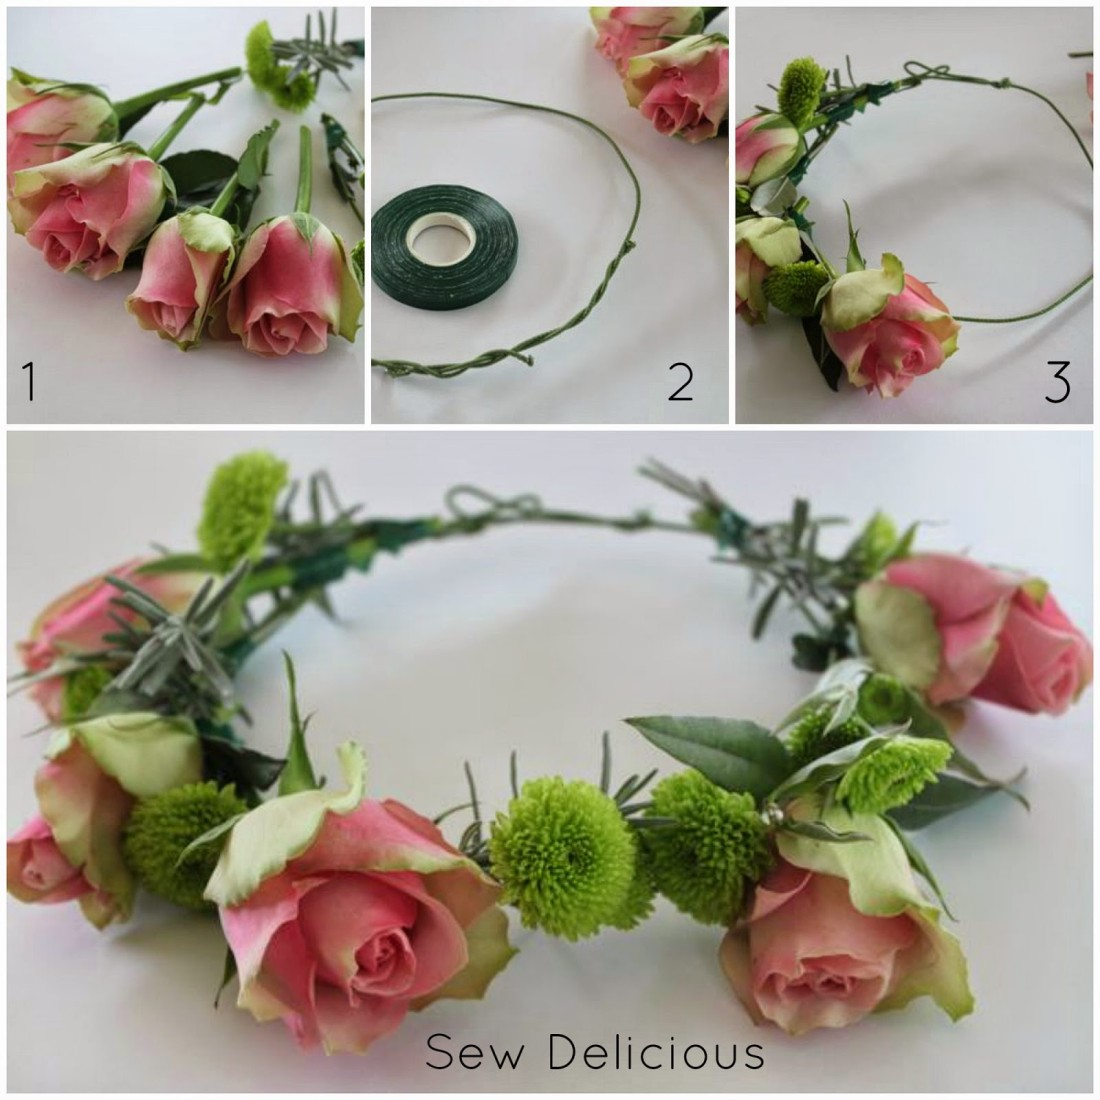 Diy floral crown tutorial sew delicious diy floral crown tutorial izmirmasajfo